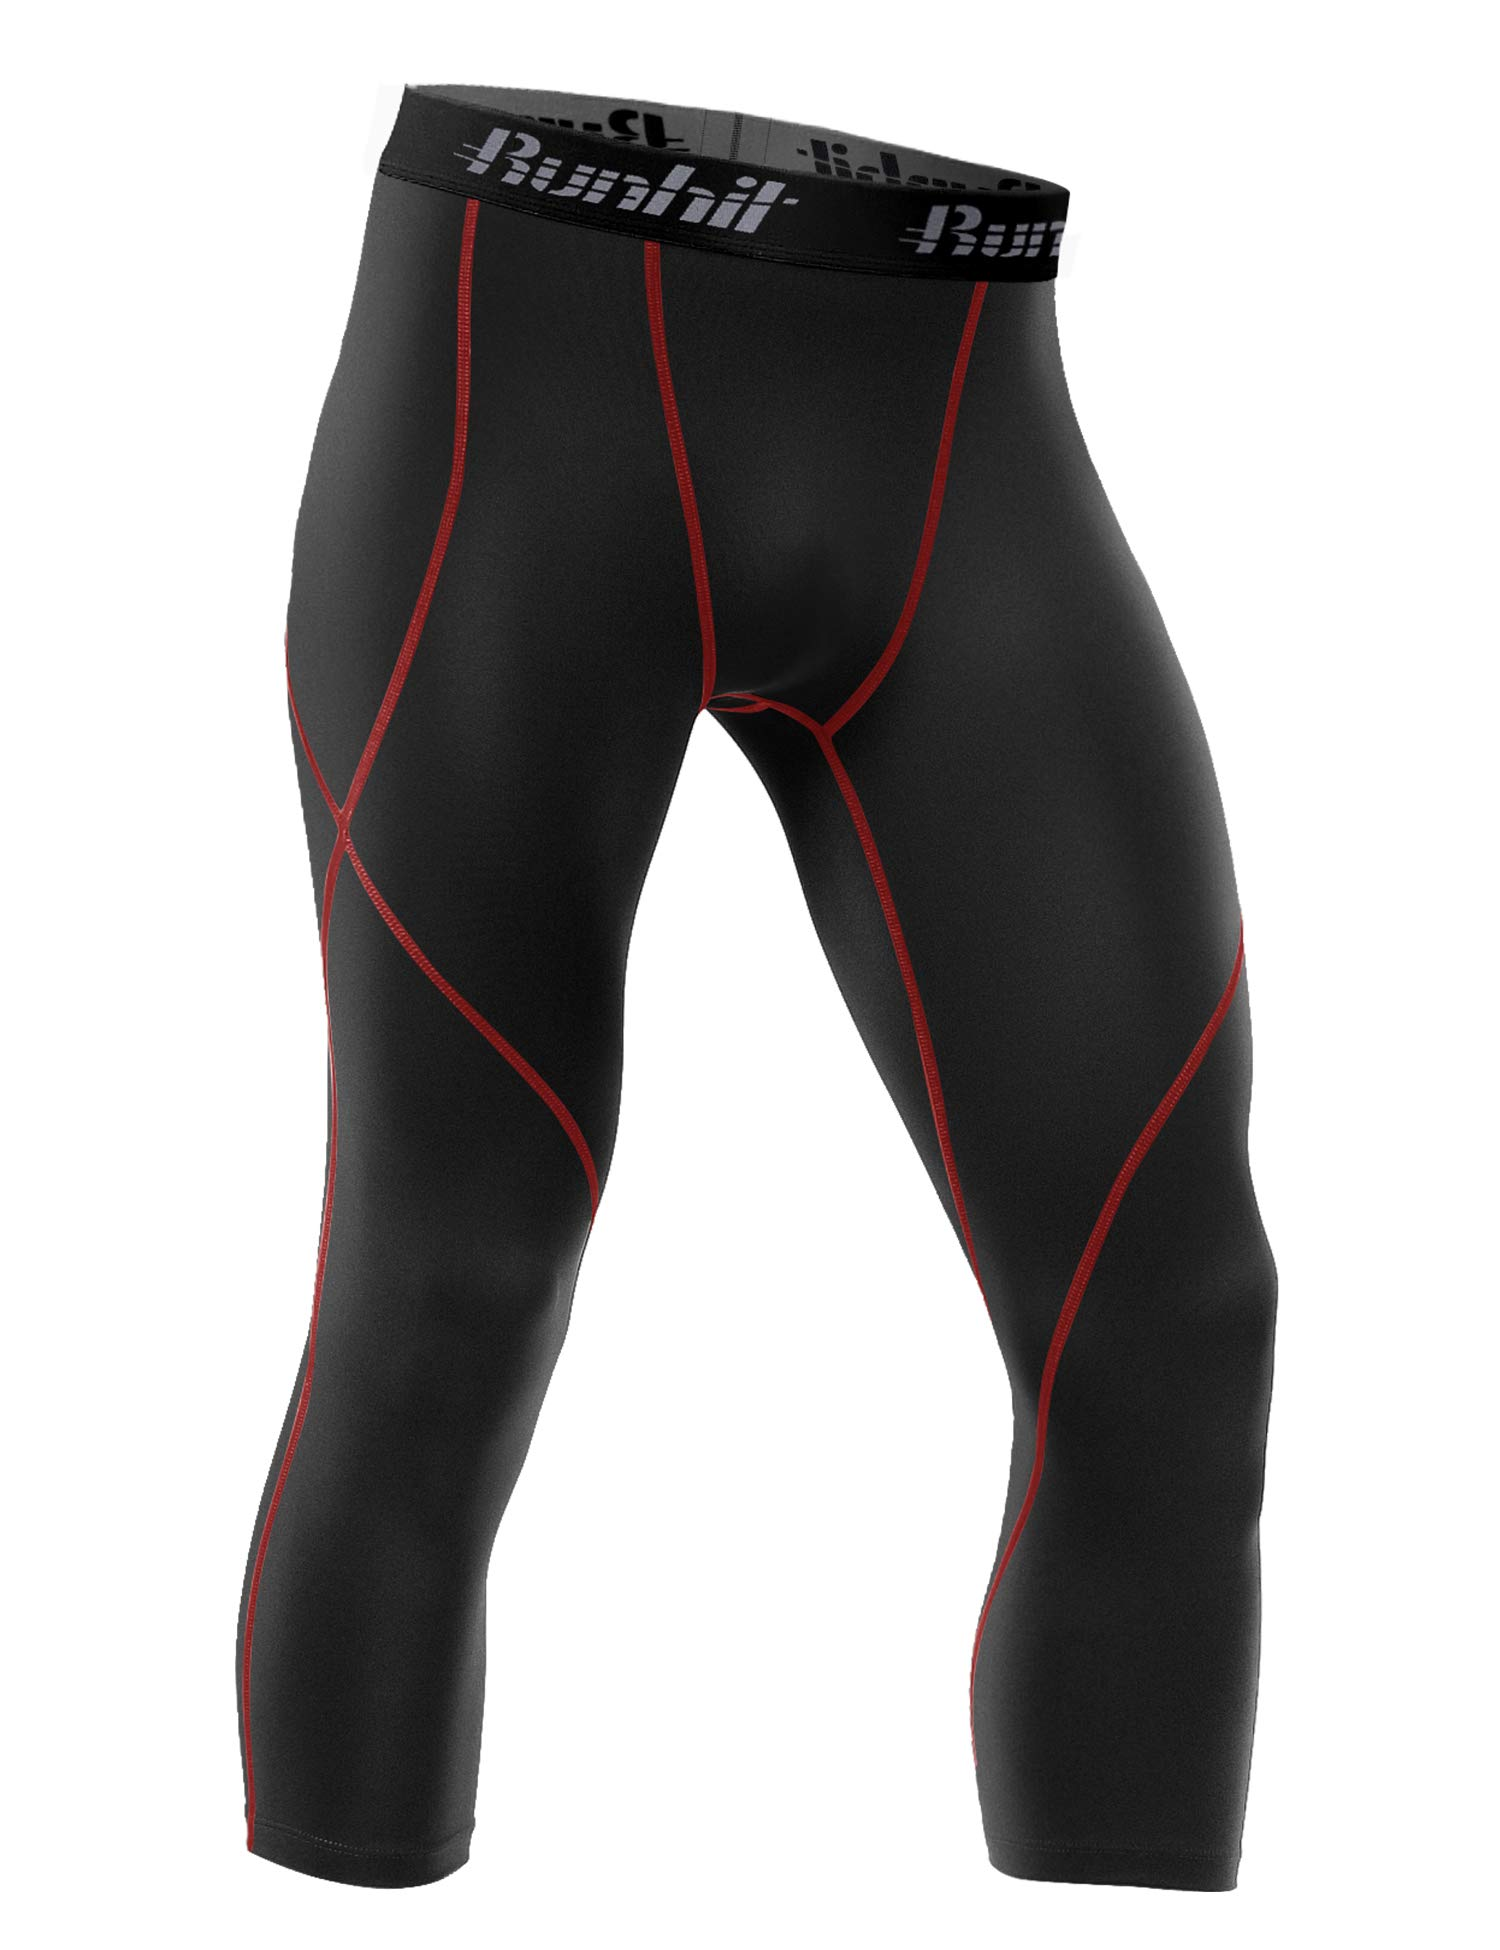 Runhit Mens 3/4 Compression Leggings Pants Capri Shorts Baselayer Cool Dry Sport Tights Black Red by Runhit